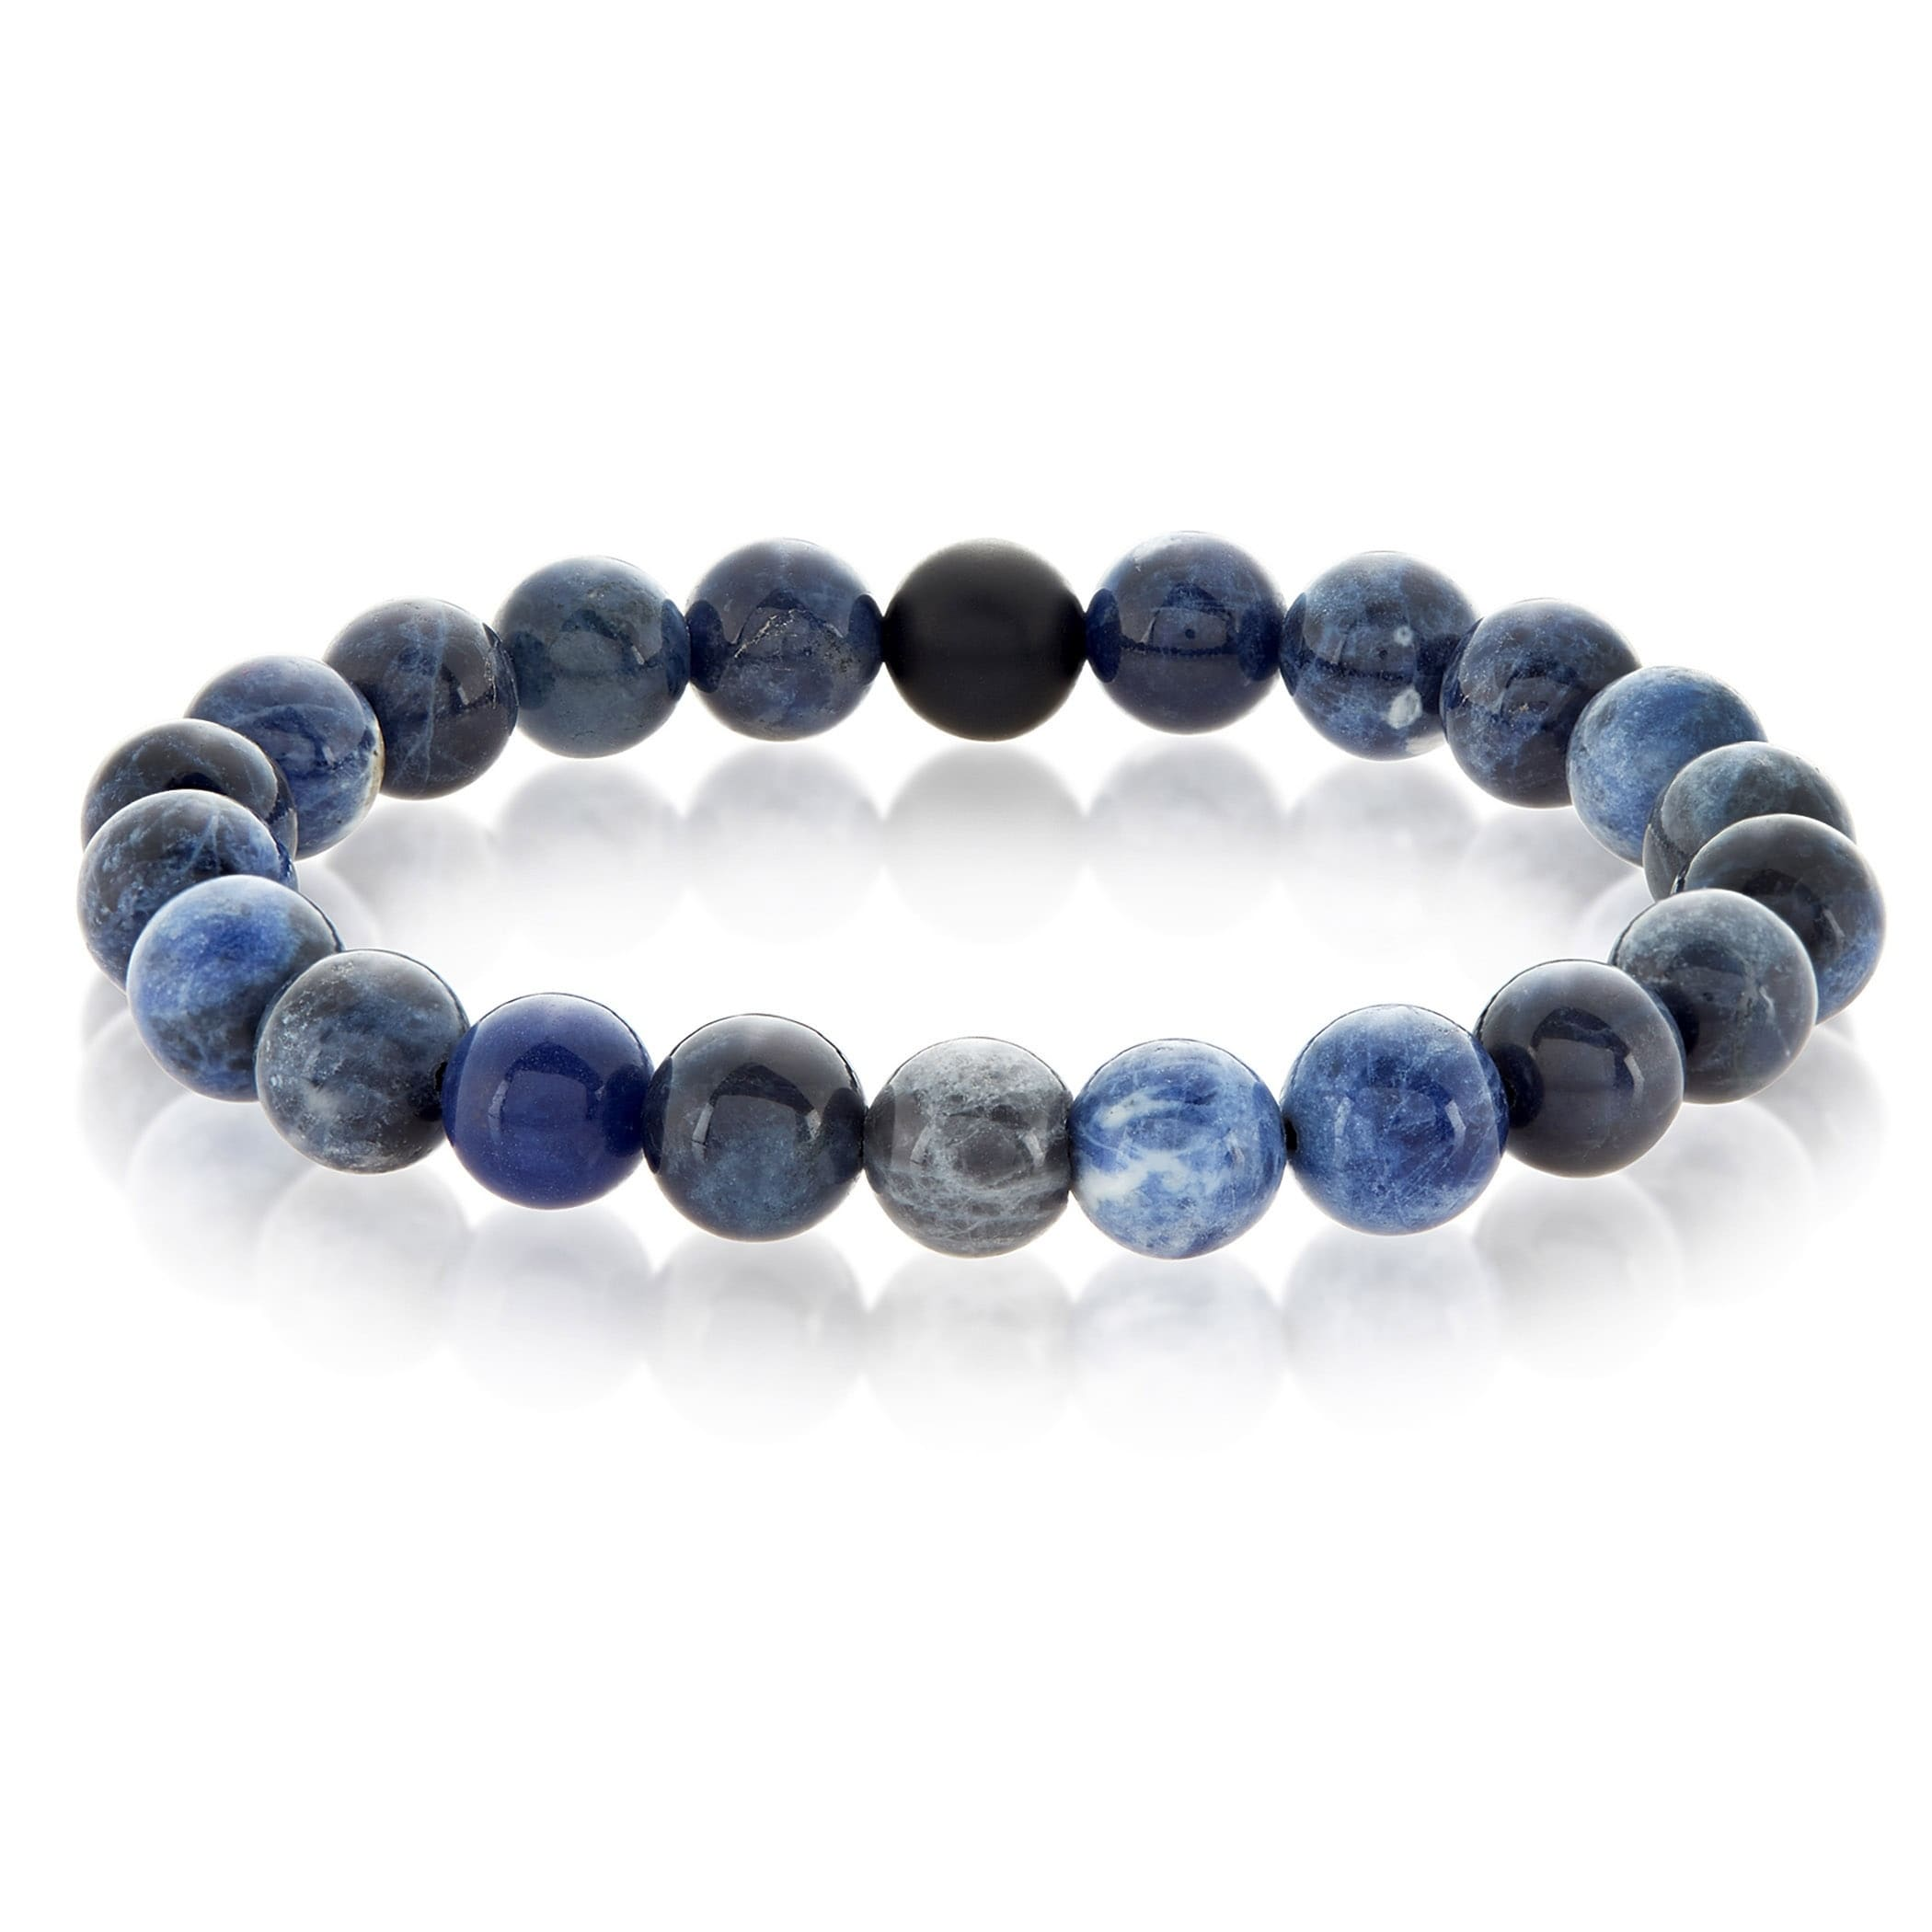 bracelets beads agate yoga bead product natural mala round cheap pendant india key stone gongxumei online by matte bracelet prayer love